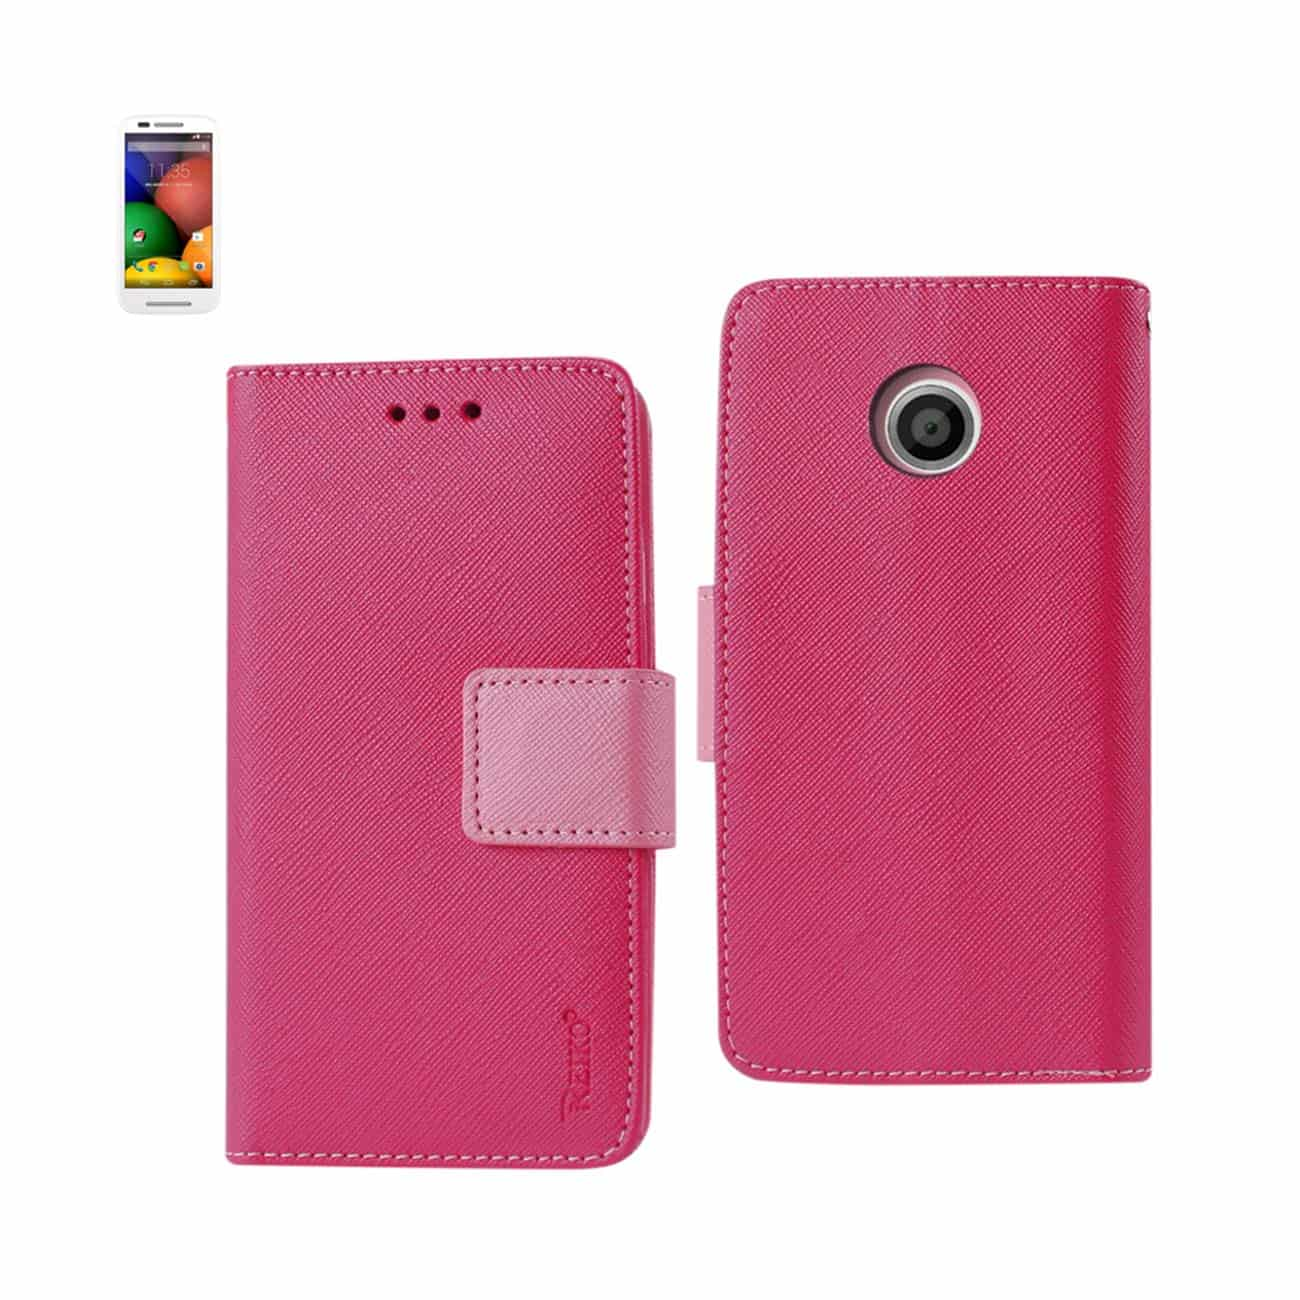 MOTOROLA MOTO E 3-IN-1 WALLET CASE IN HOT PINK